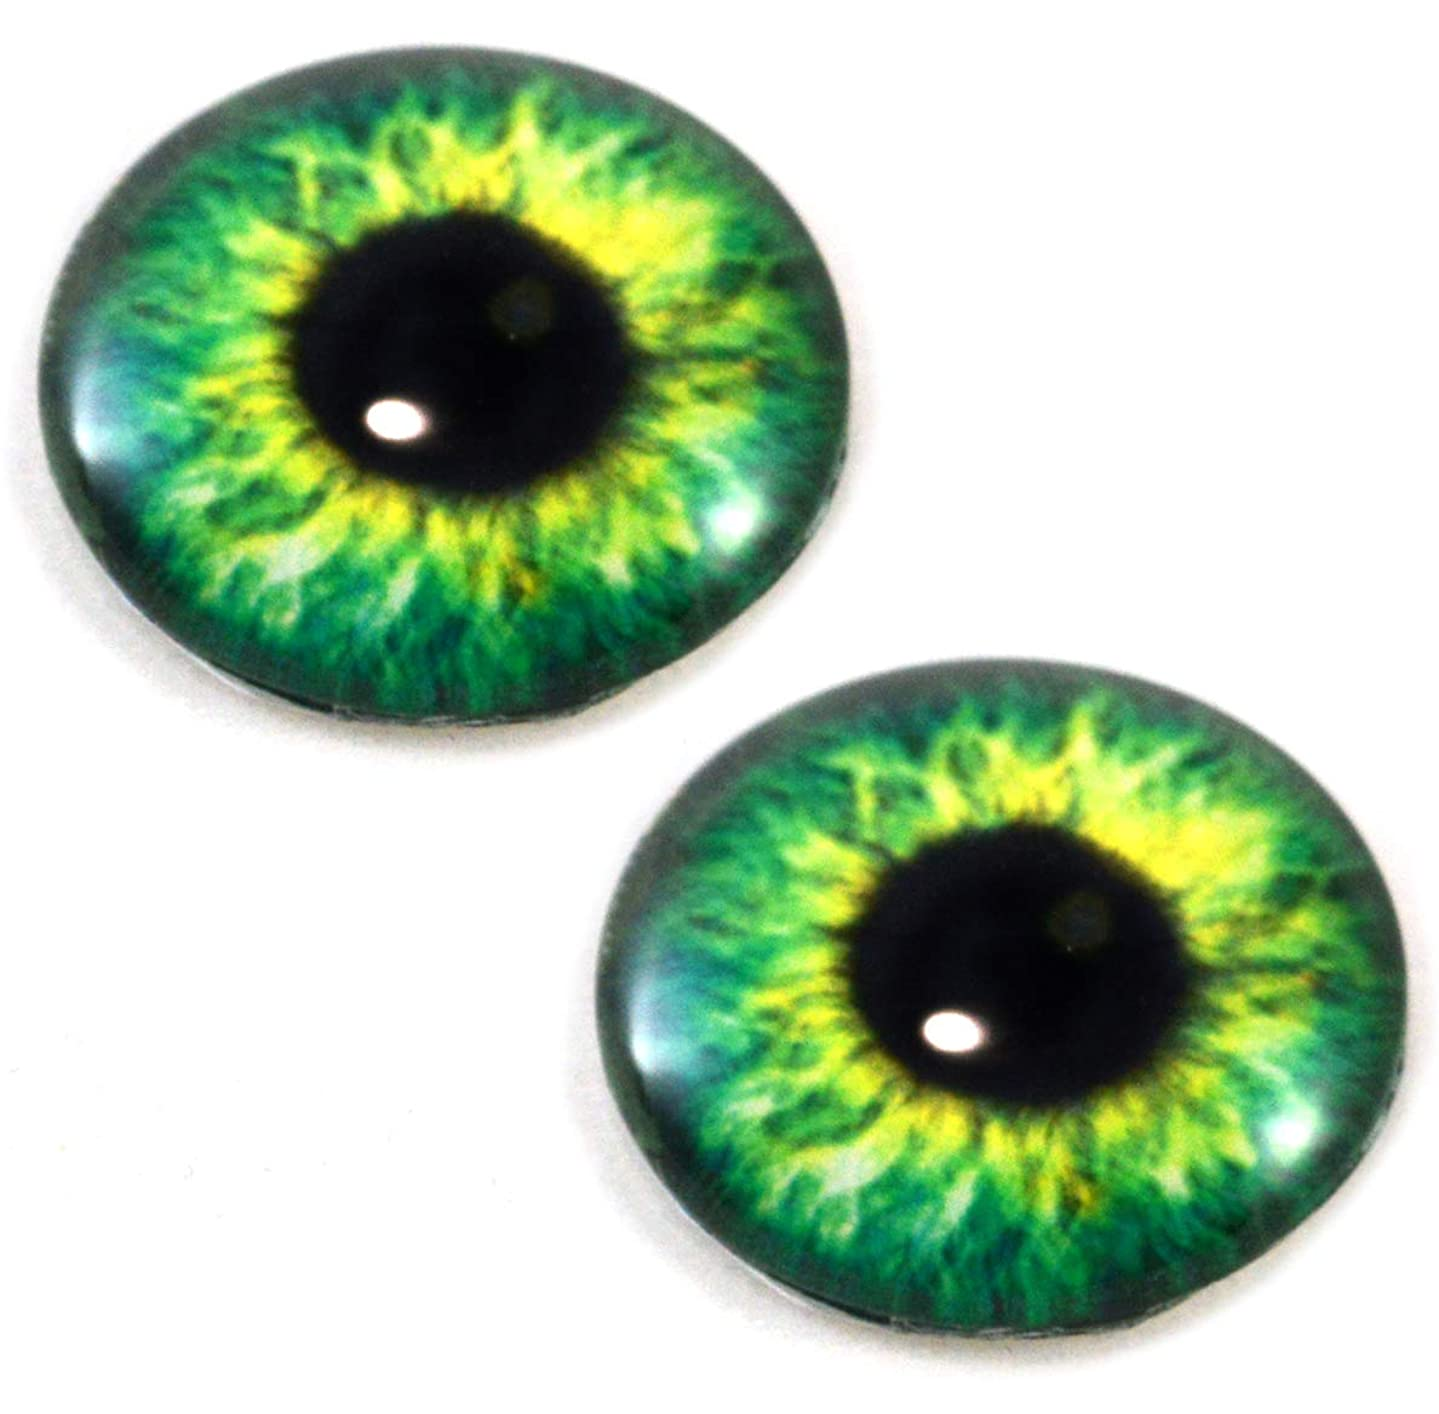 30mm Bright Green Fantasy Human Glass Eyes Unique Pair for Art Dolls, Sculptures, Props, Masks, Fursuits, Jewelry Making, Taxidermy, and More